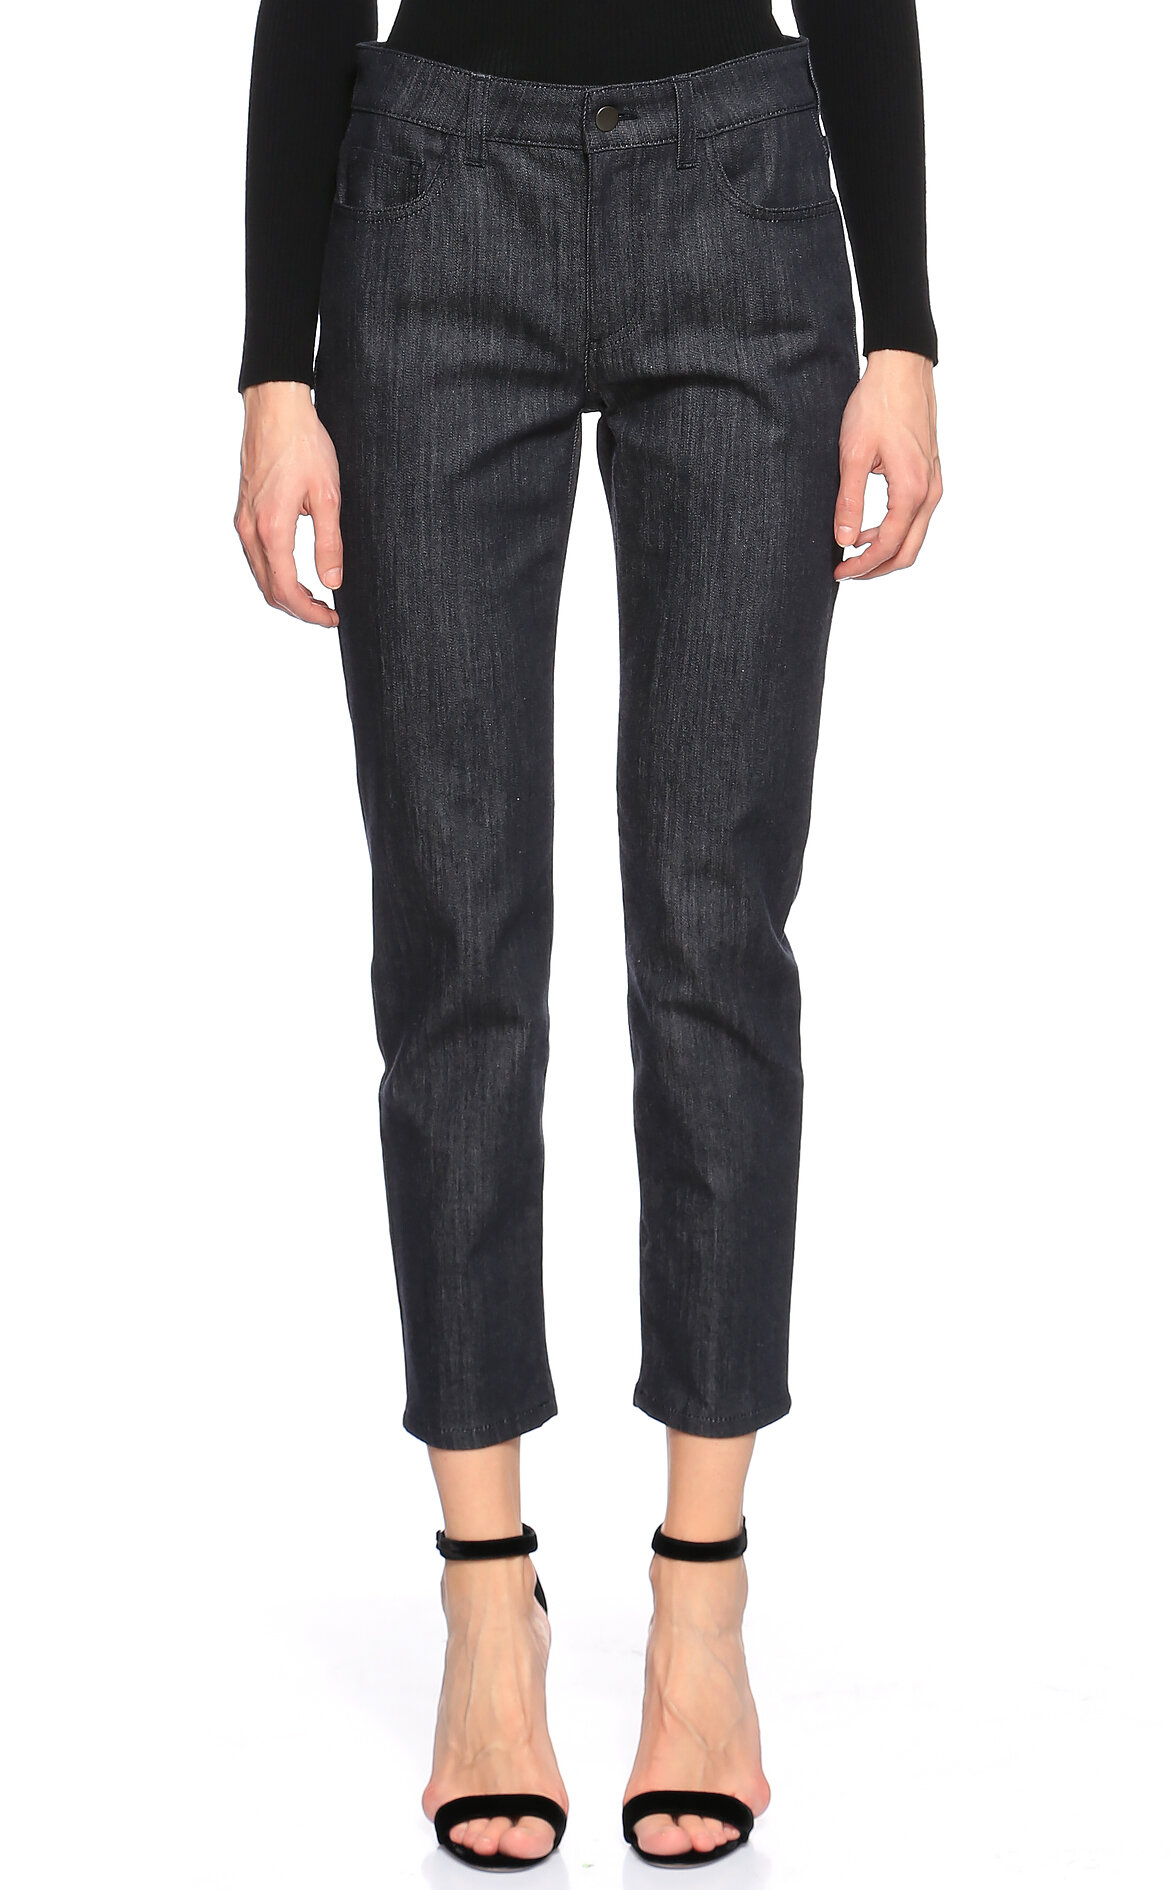 Salvatore Ferragamo-Salvatore Ferragamo Denim Jean Pantolon